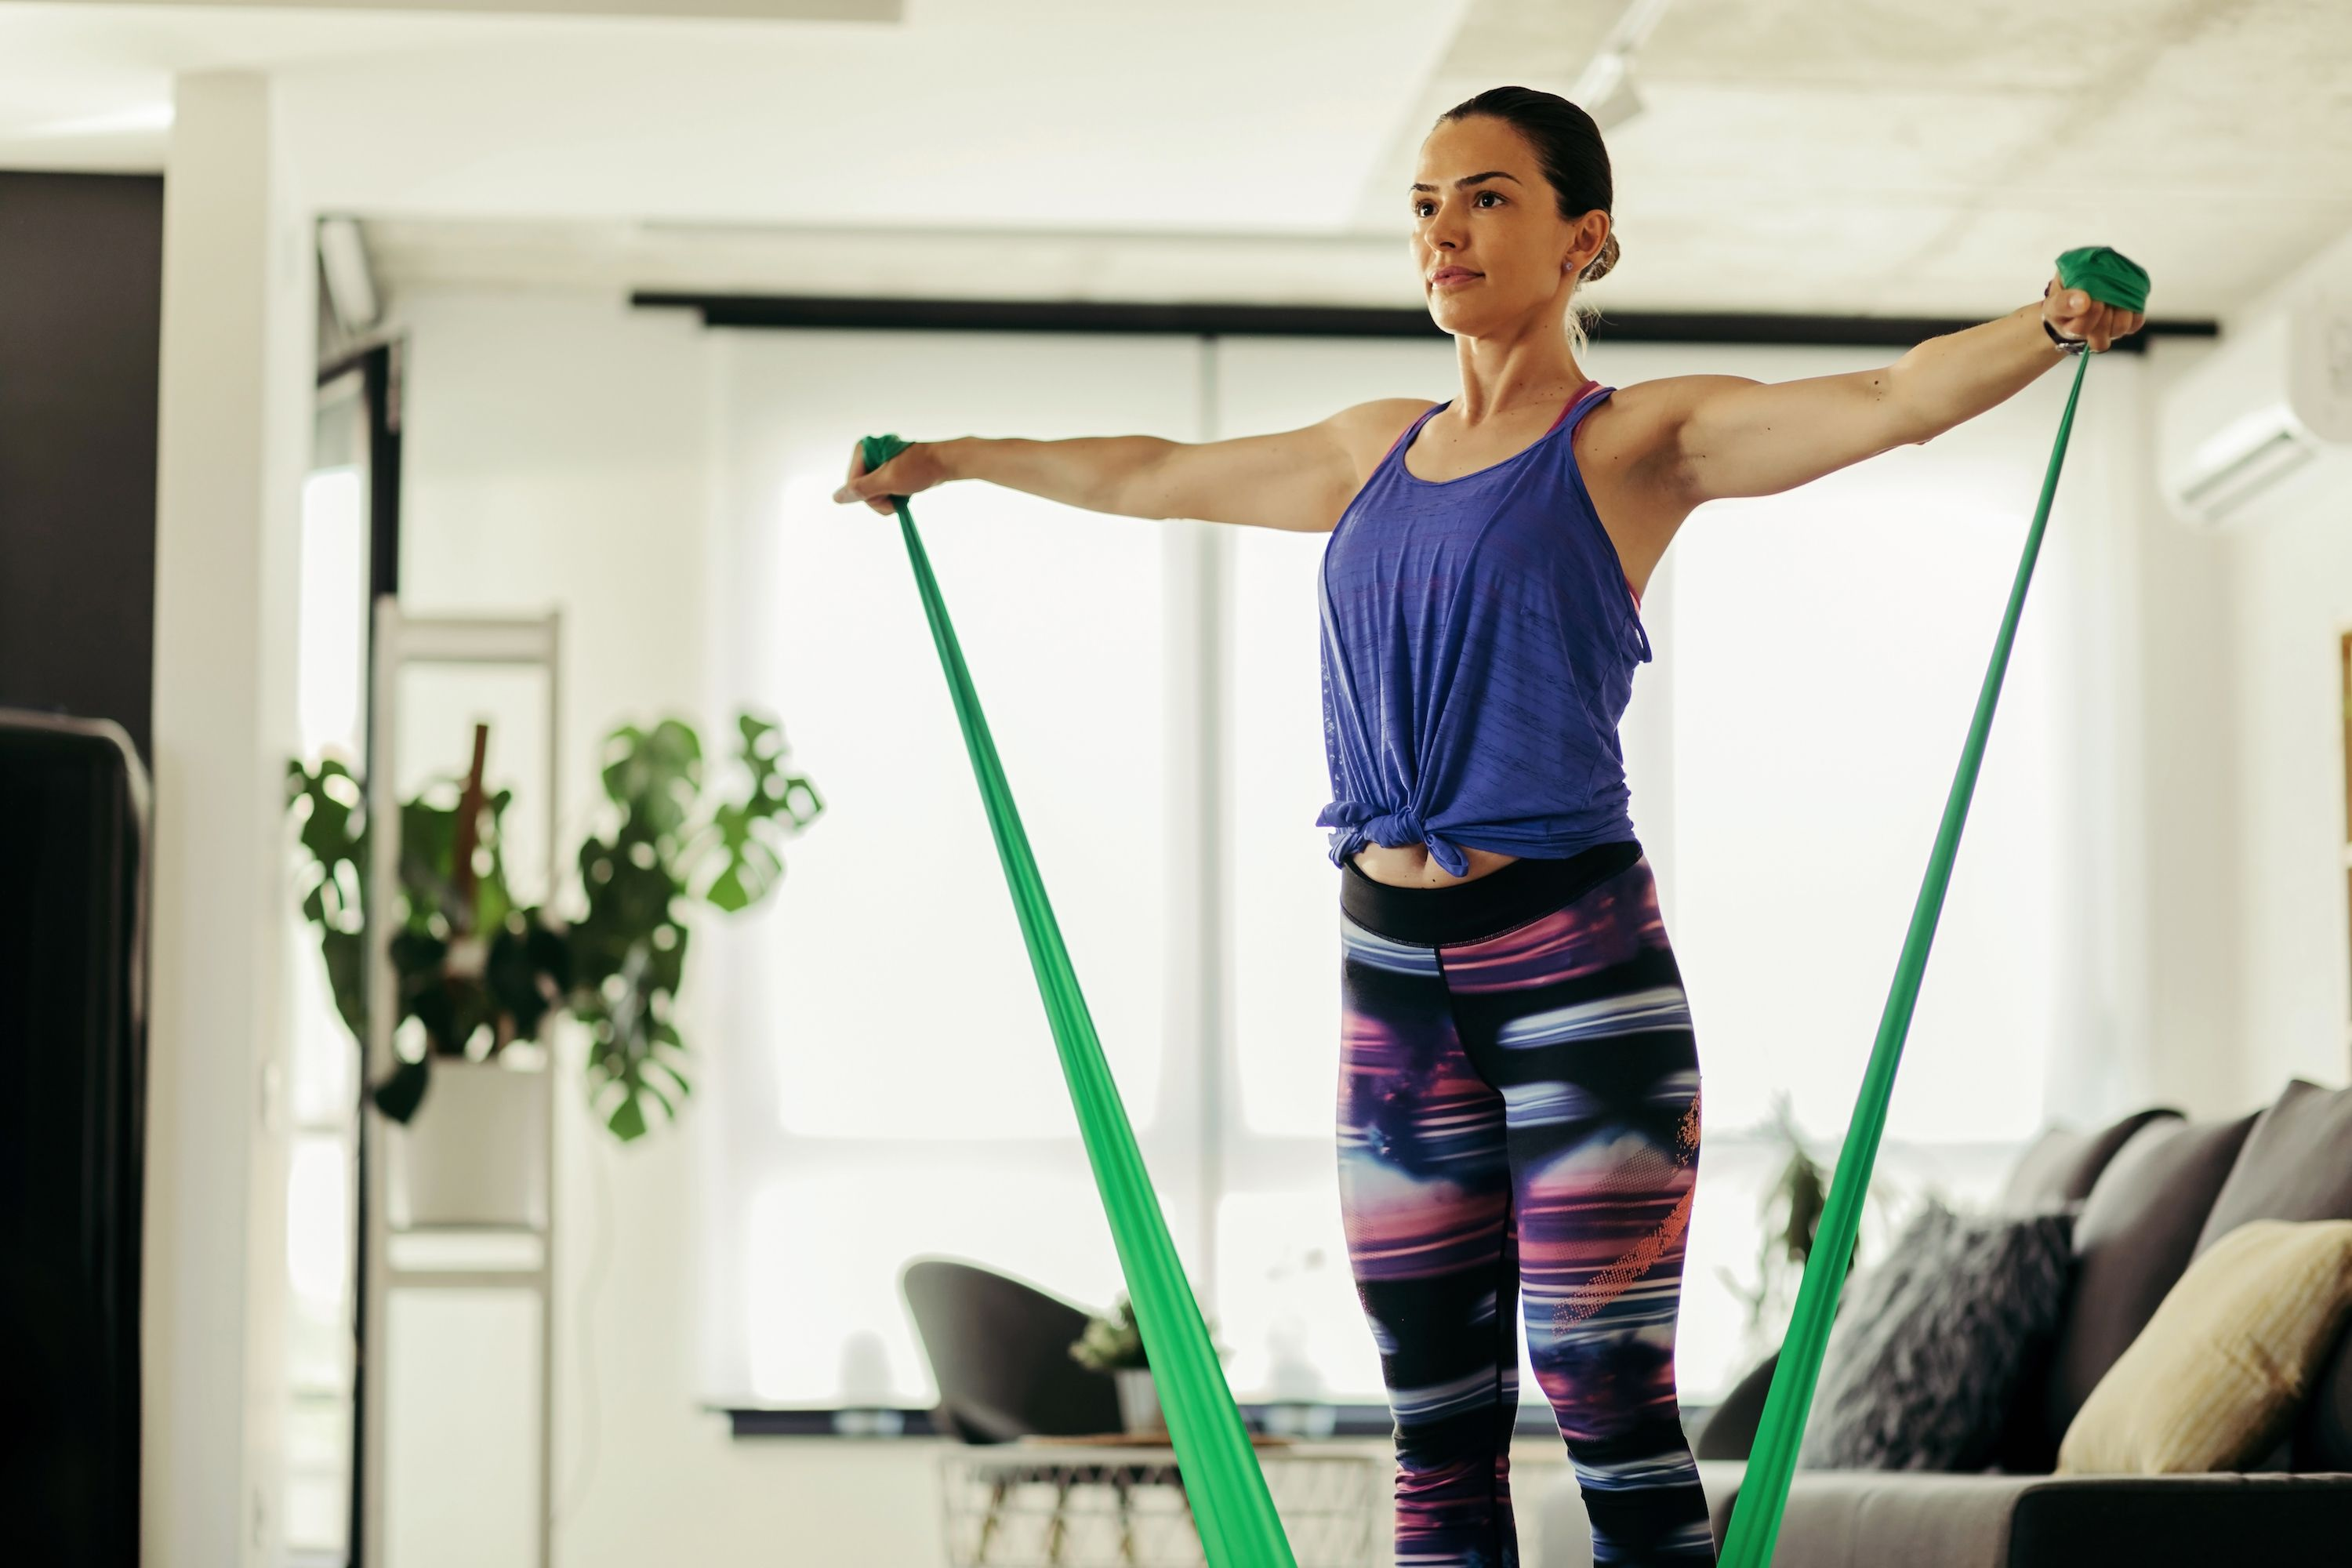 The Best Resistance Band Exercises to Take Your Home Workout from Humdrum to Hard